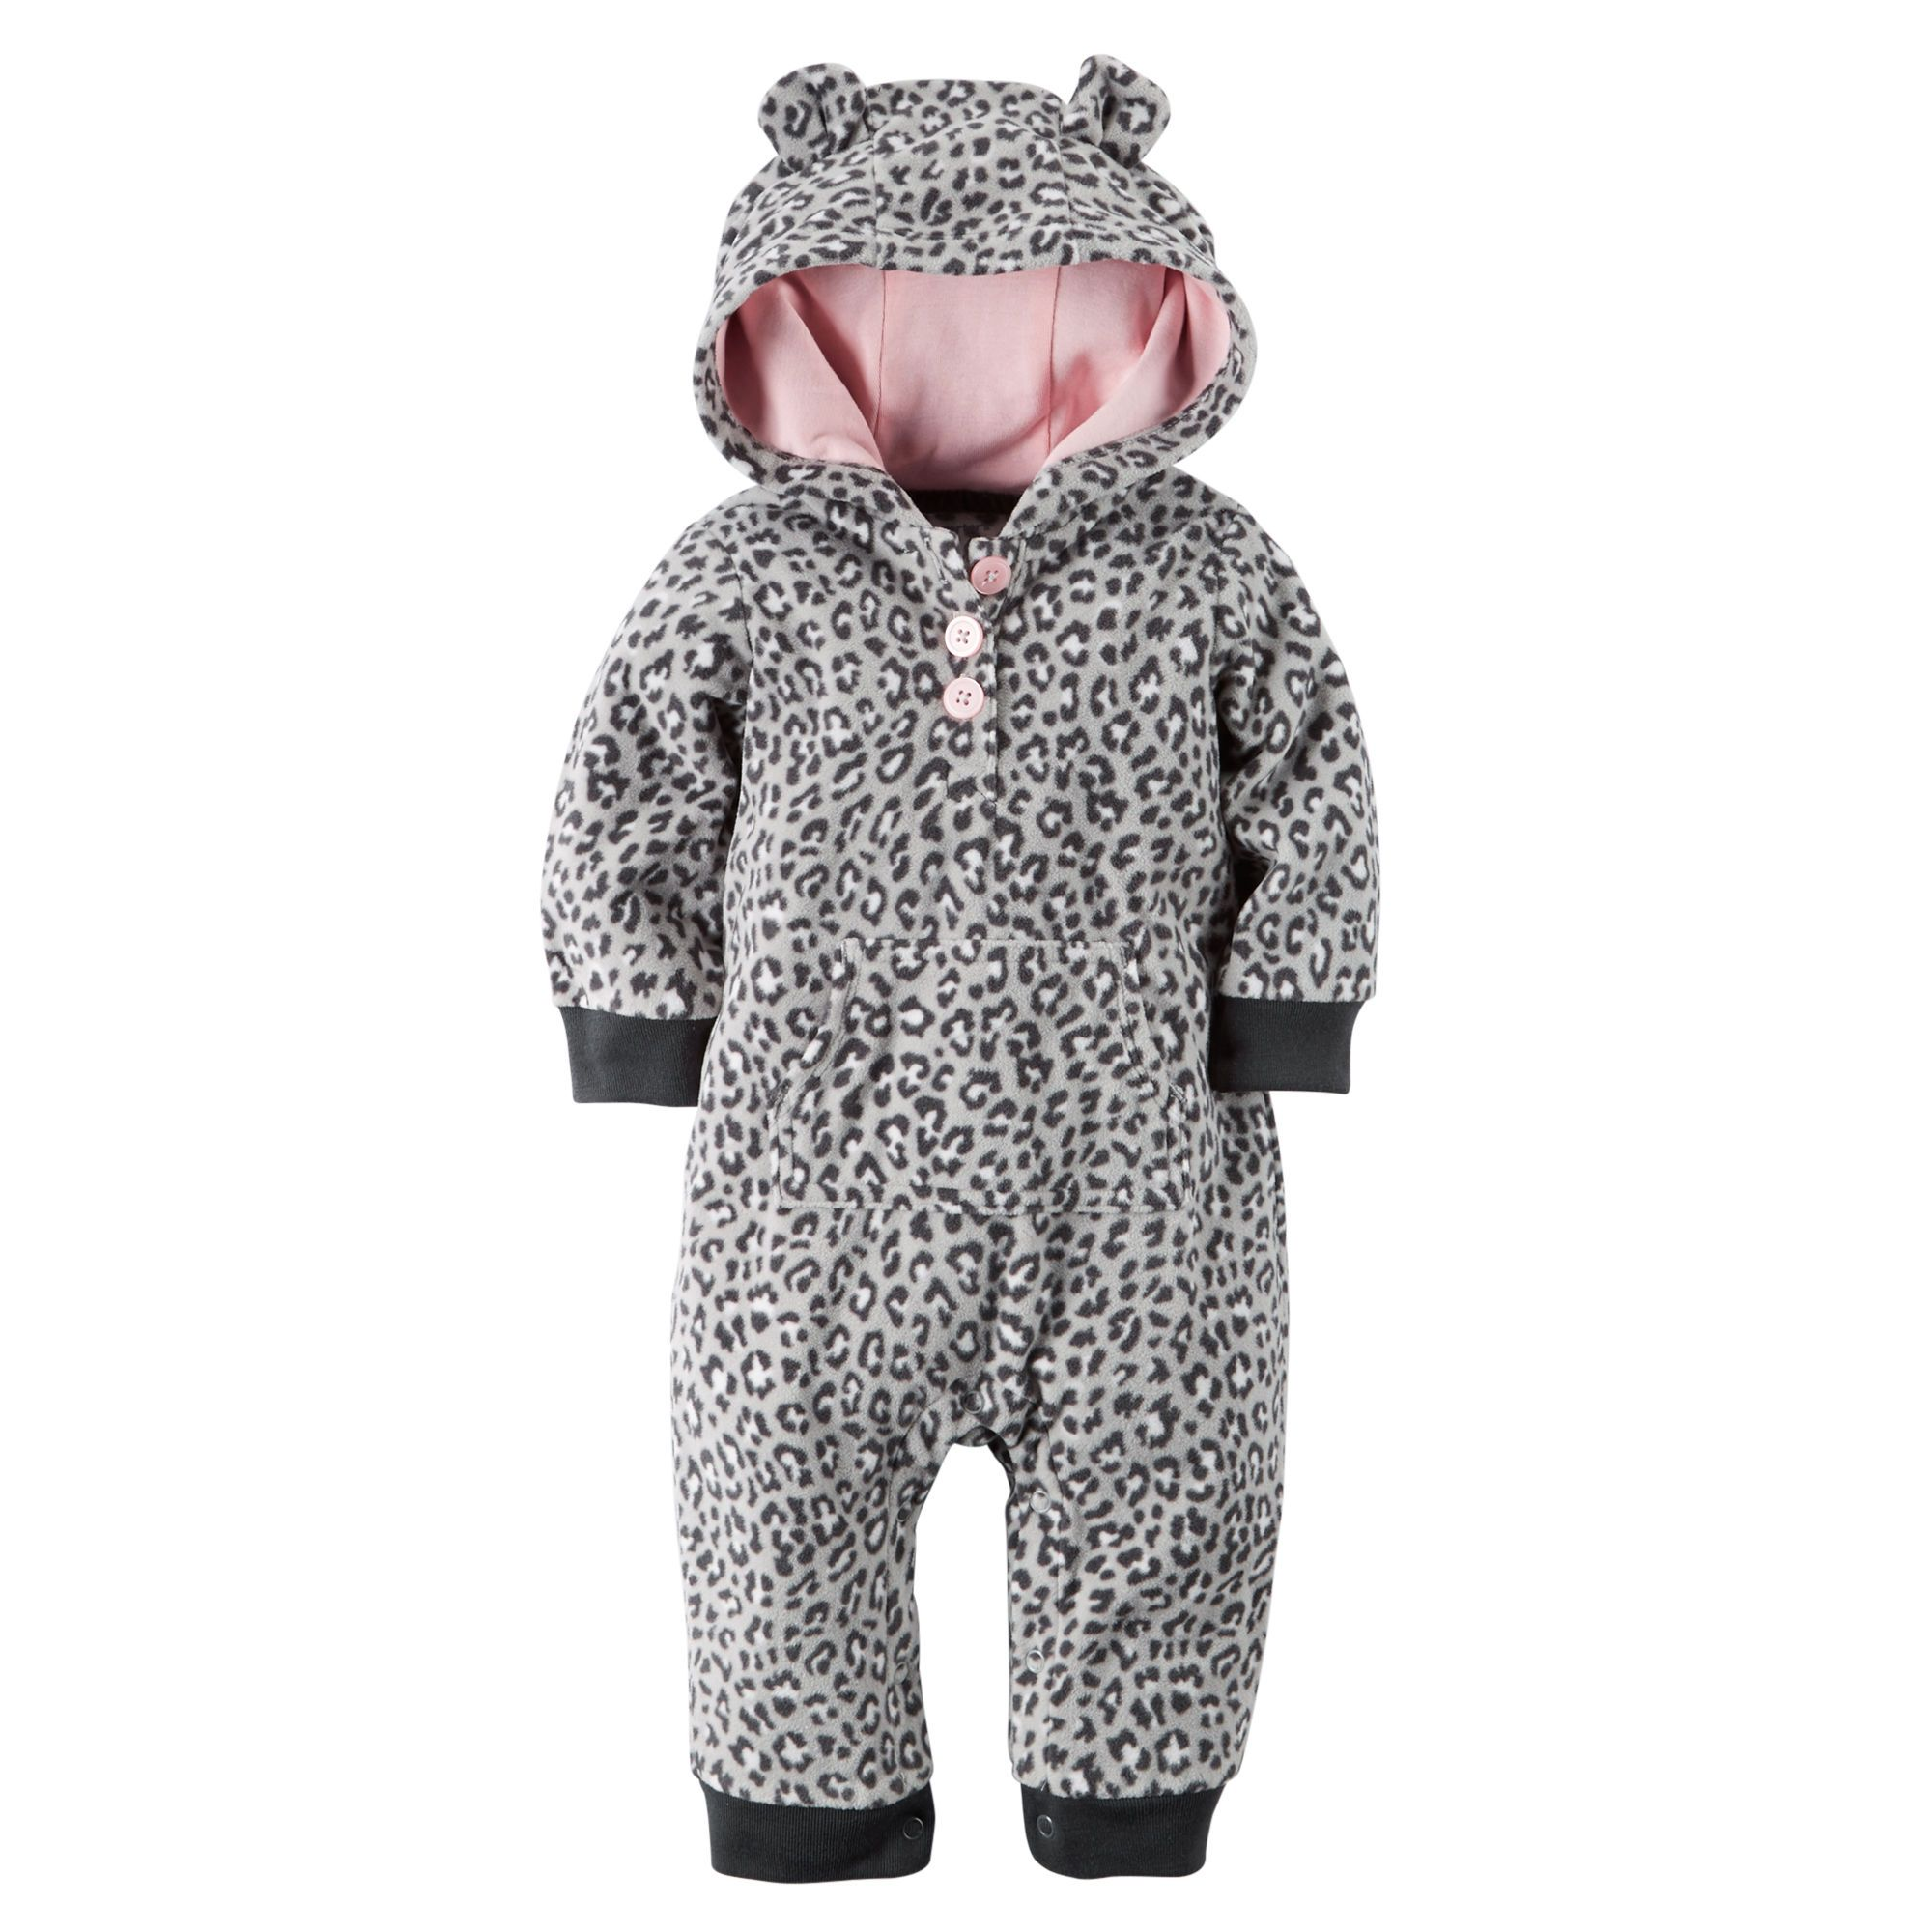 a95c3dded0 Baby Girl Hooded Fleece Jumpsuit